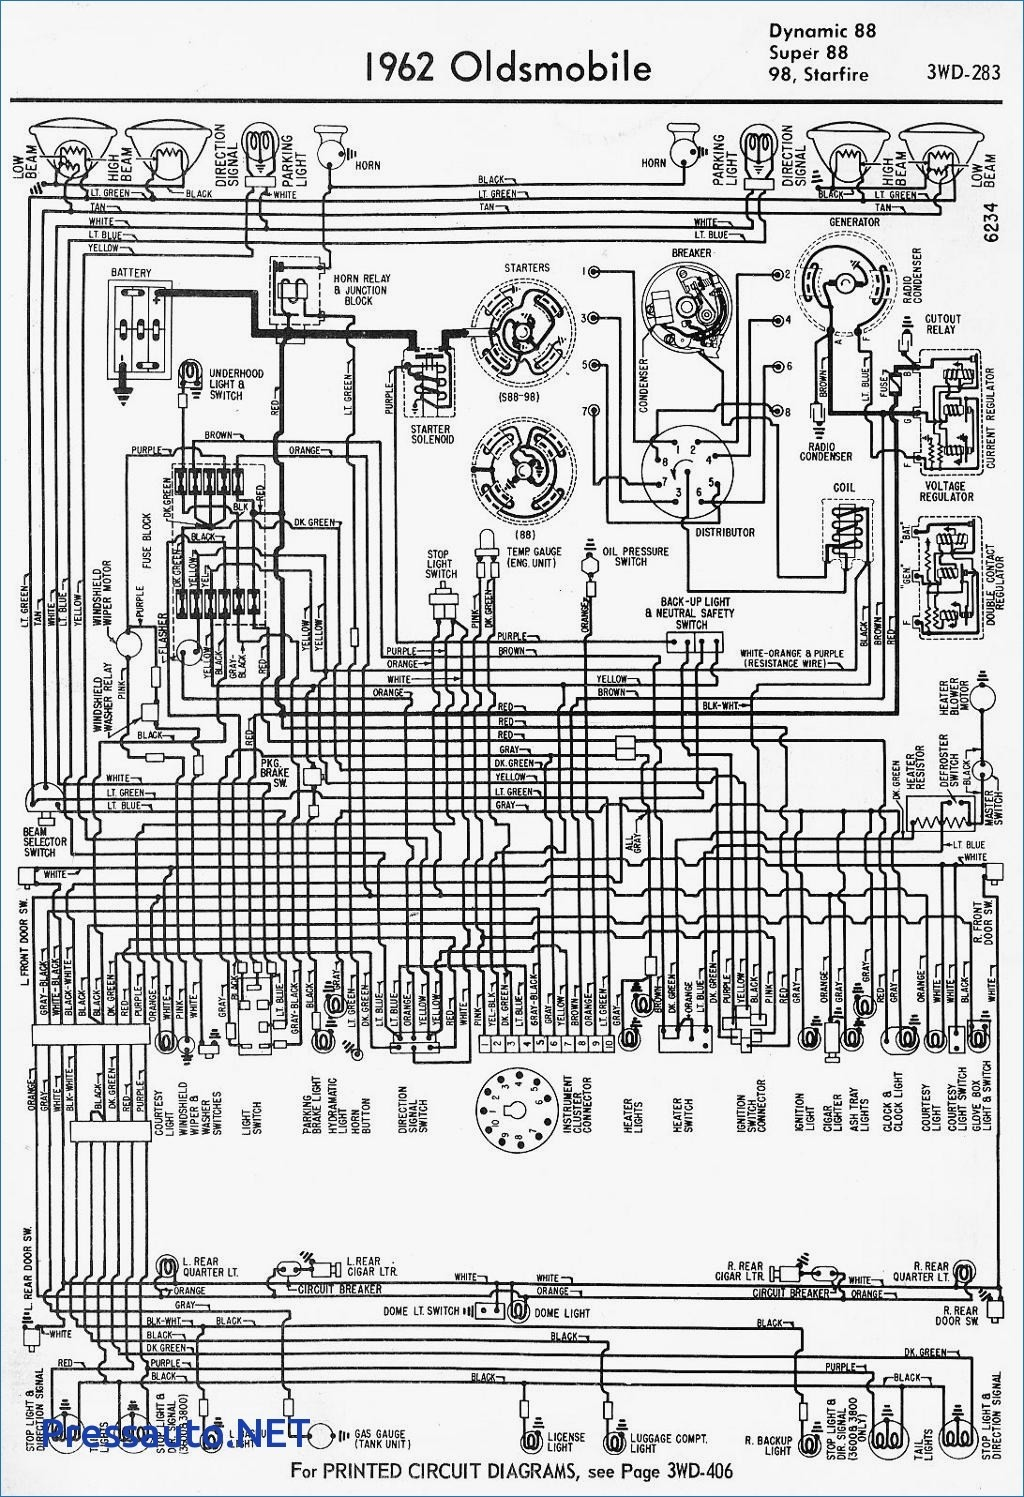 Blower Motor Wiring Diagram For Freightliner Trusted Schematics Heater M2 New Image 1972 Chevy